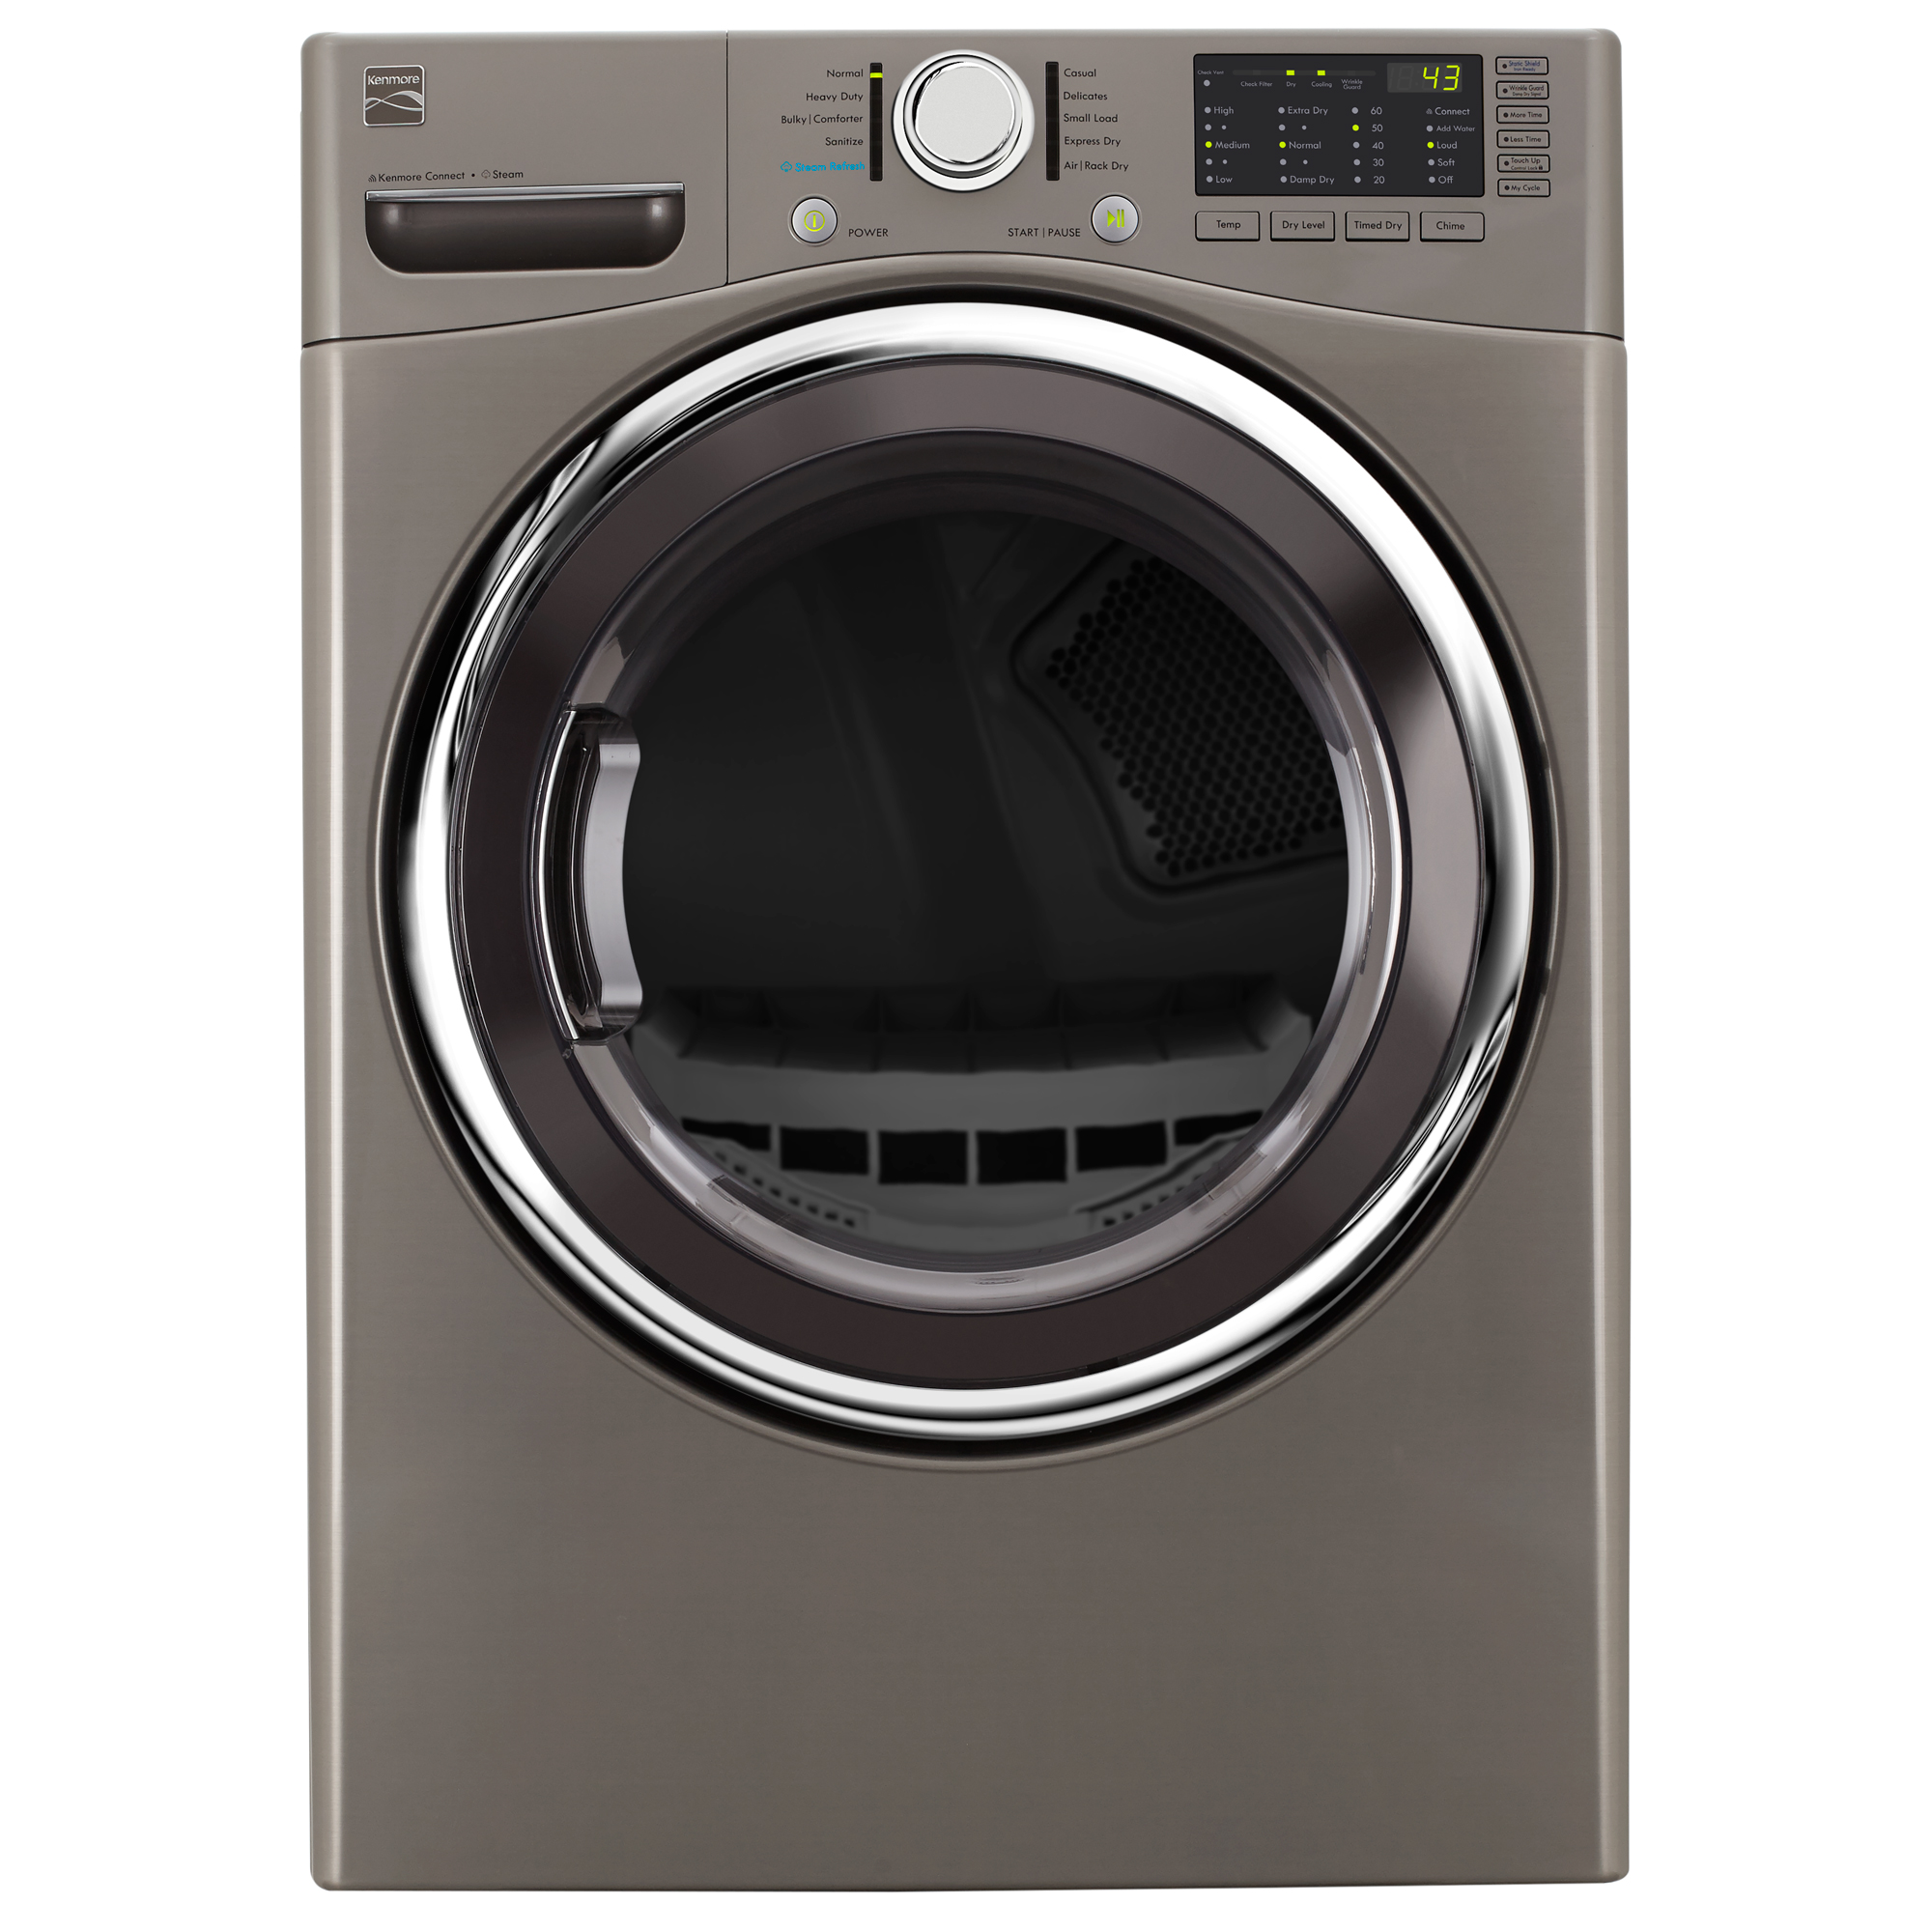 81383-7-4-cu-ft-Electric-Dryer-w-Steam-Metallic-Silver